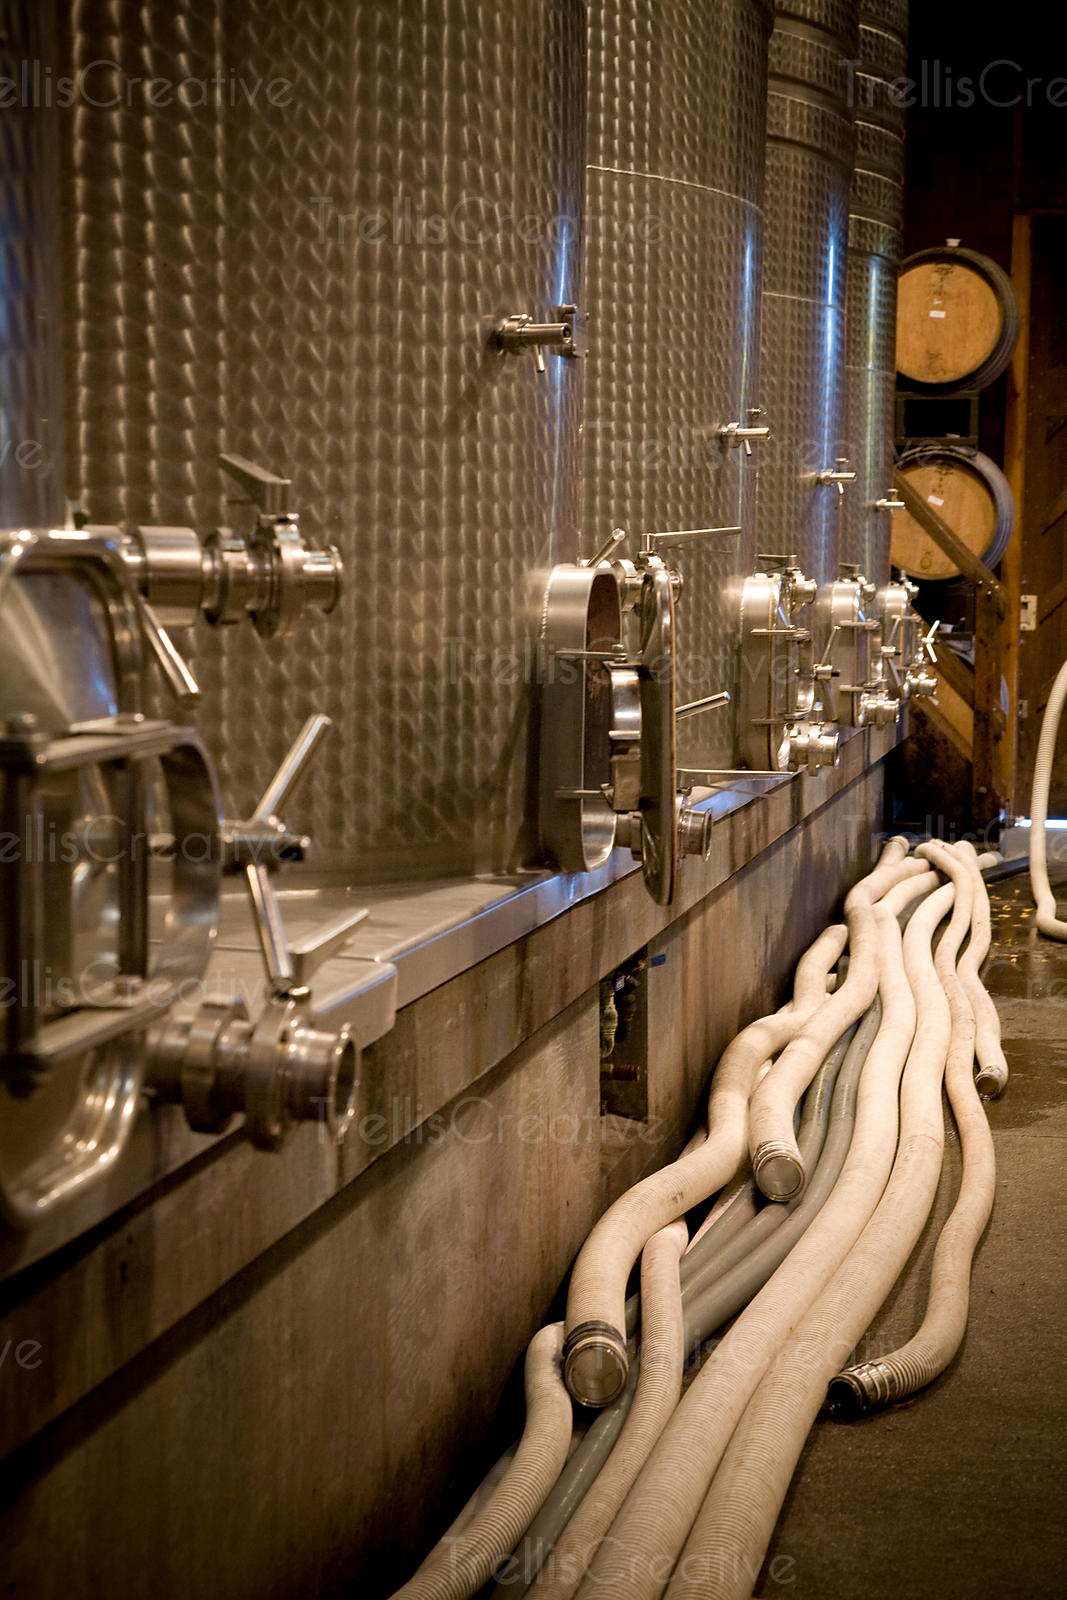 A view of a winery production cellar